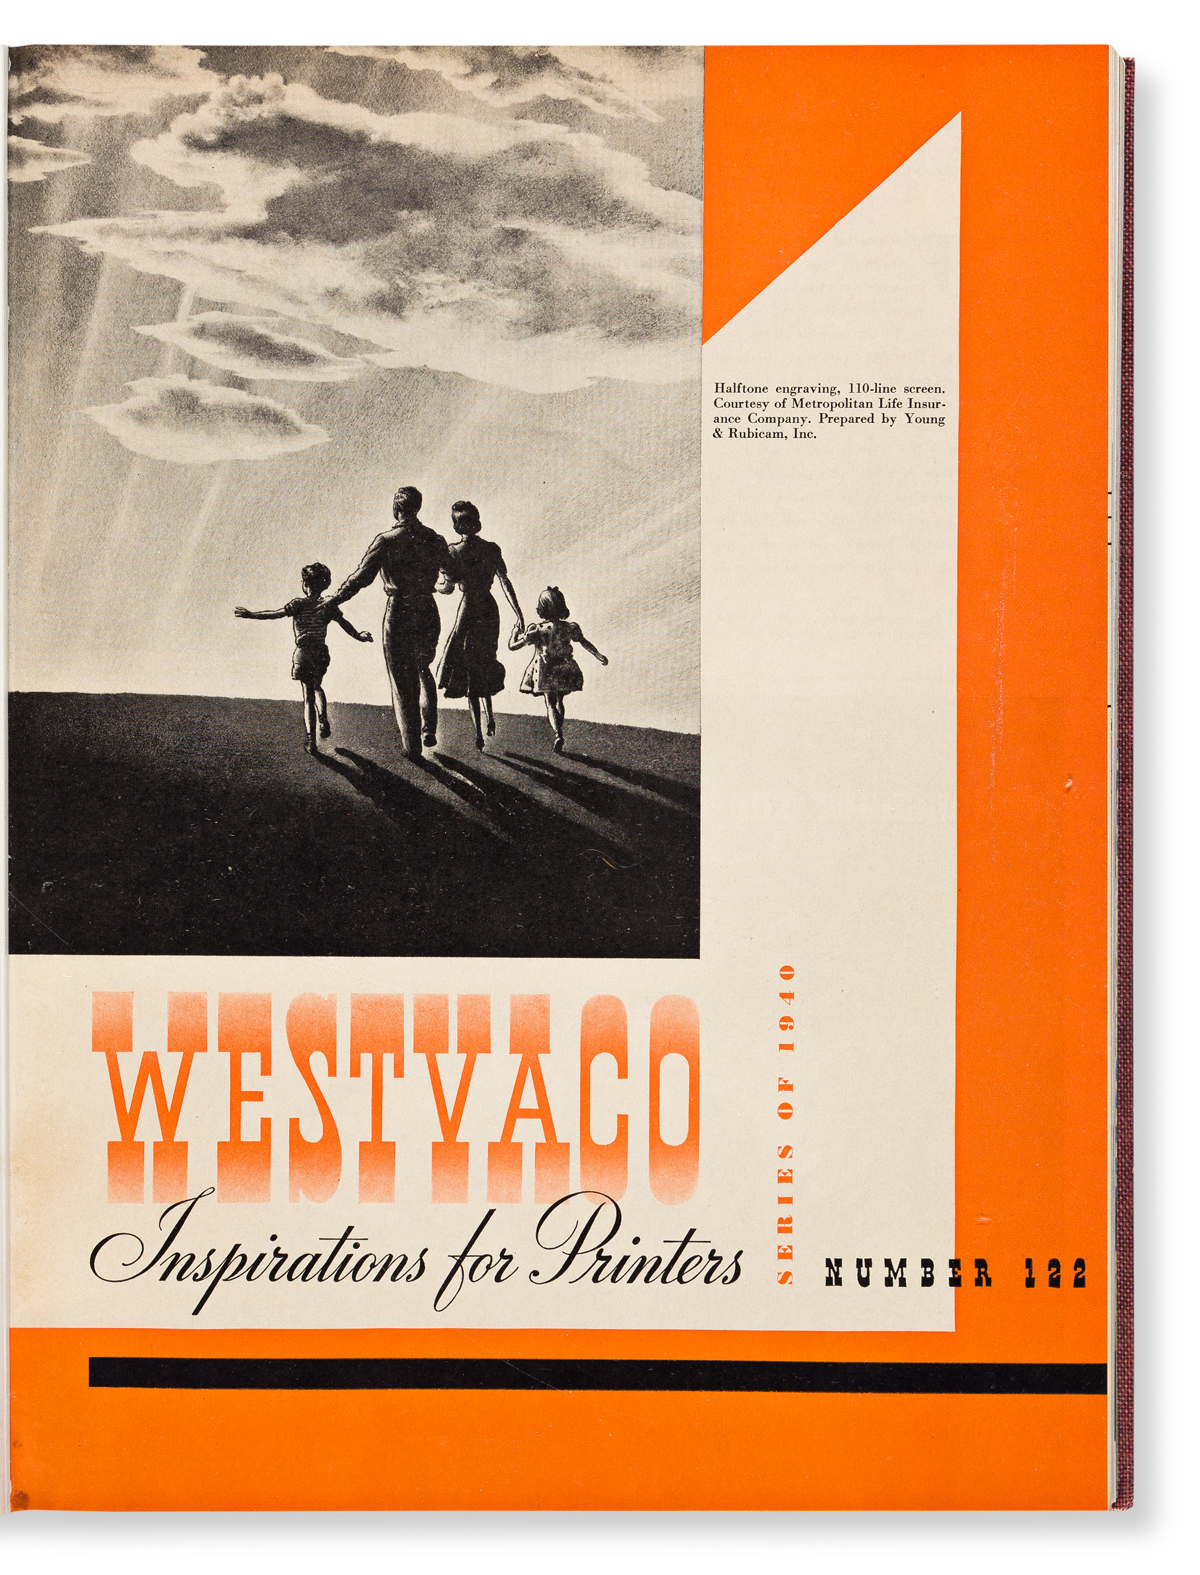 VARIOUS DESIGNERS. Westvaco - Inspirations for Printers. 3 vols: 1938-1939, 1940-1941, 1956-1961. West Virginia Pulp and Paper Company,